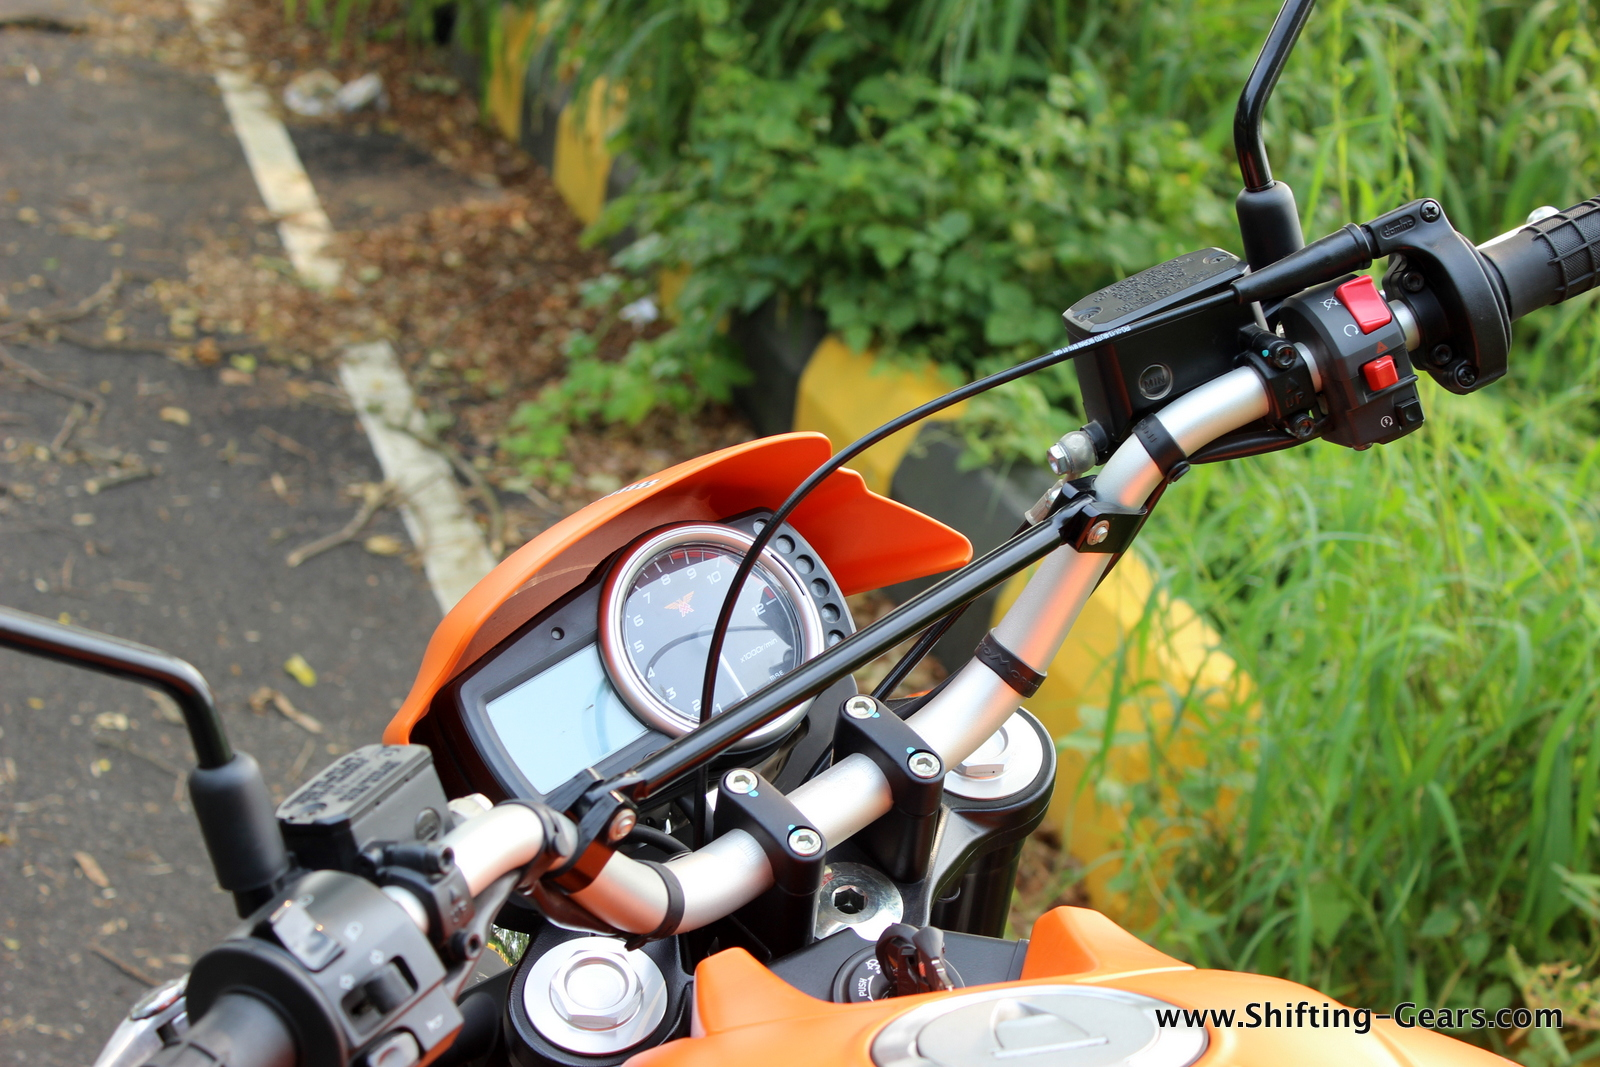 Conventional triple clamp handlebar with a connecting rod to ensure that it doesn't bend while the roads are less than perfect